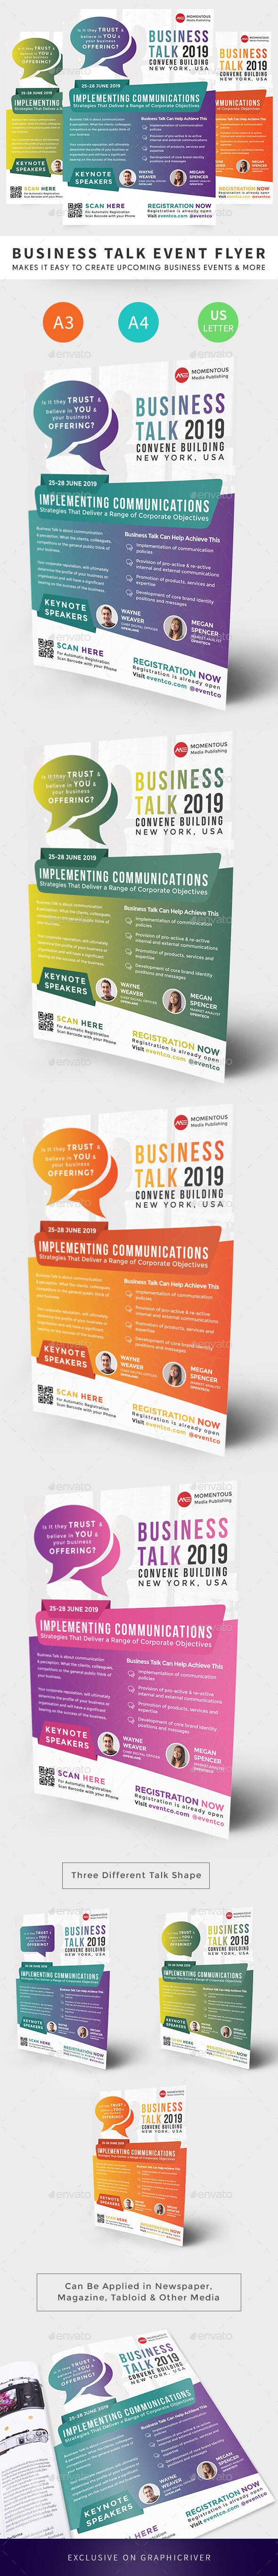 Business Talk Event Flyer - Corporate Flyers